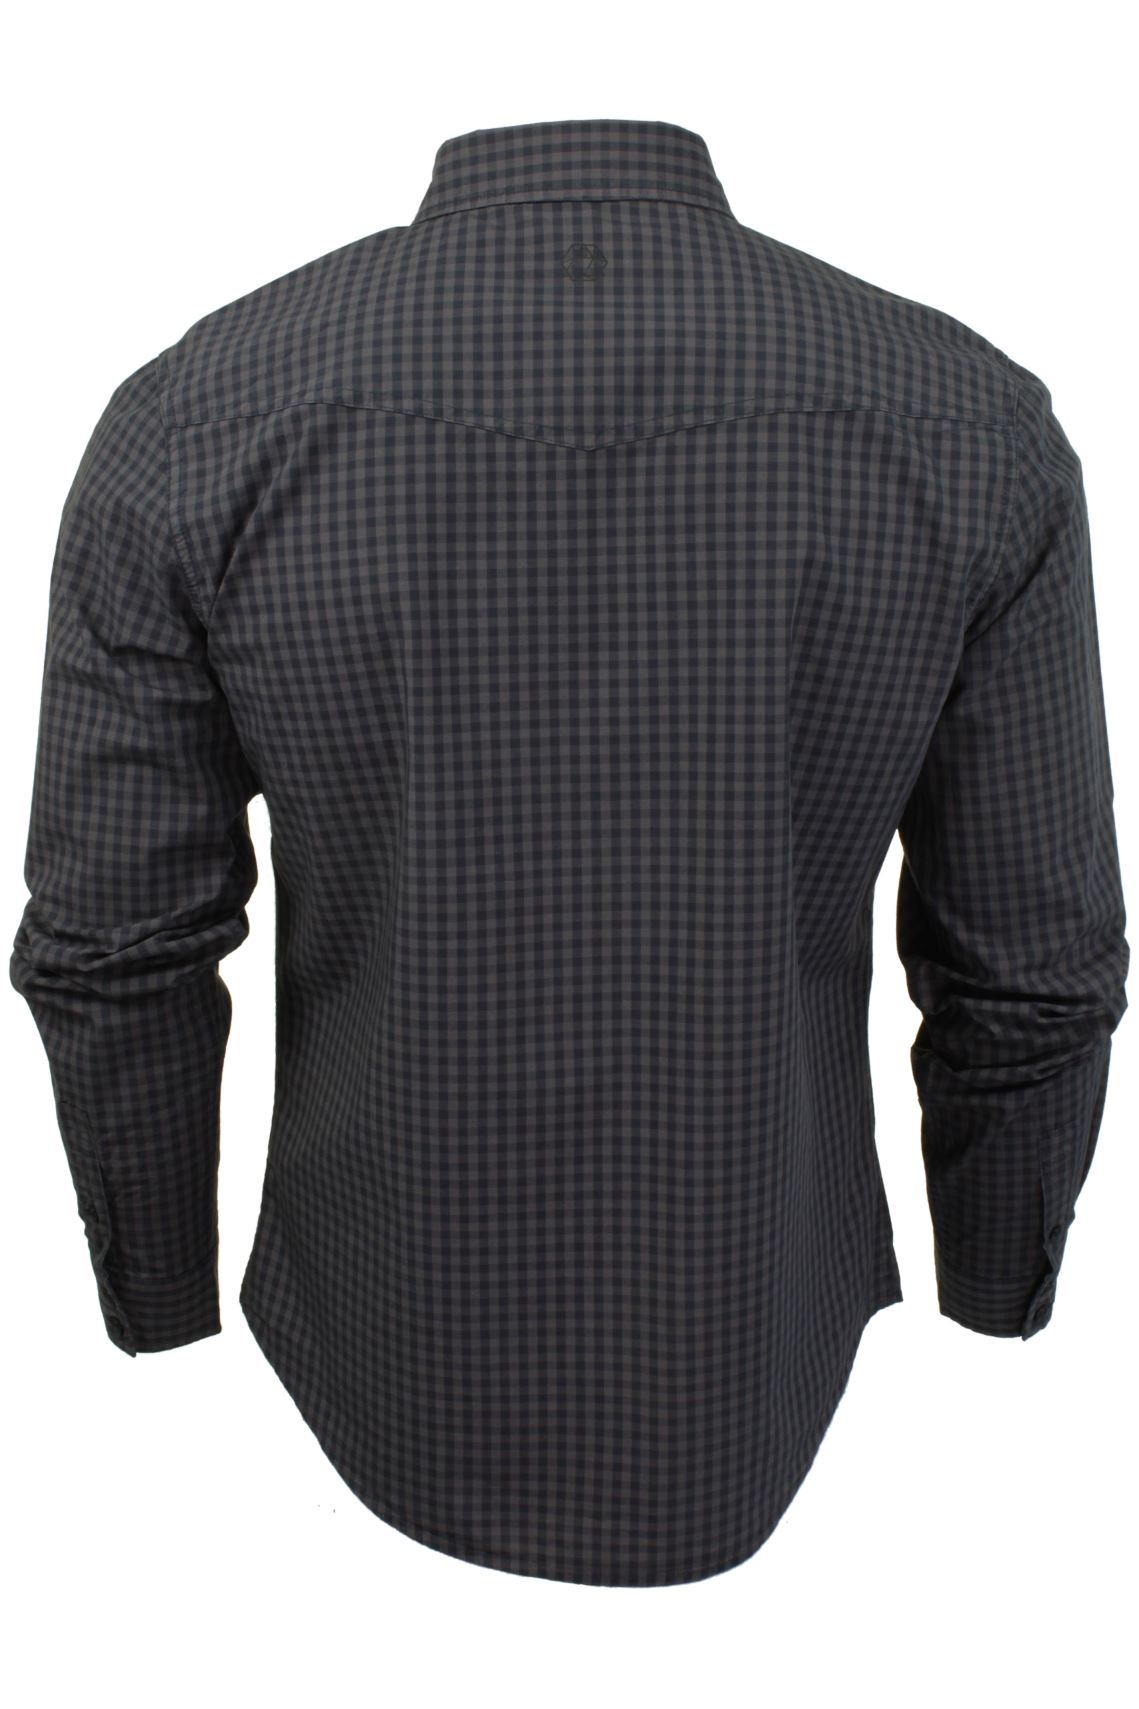 Mens-Check-Shirt-by-Smith-amp-Jones-039-Porticus-039-Long-Sleeved thumbnail 11